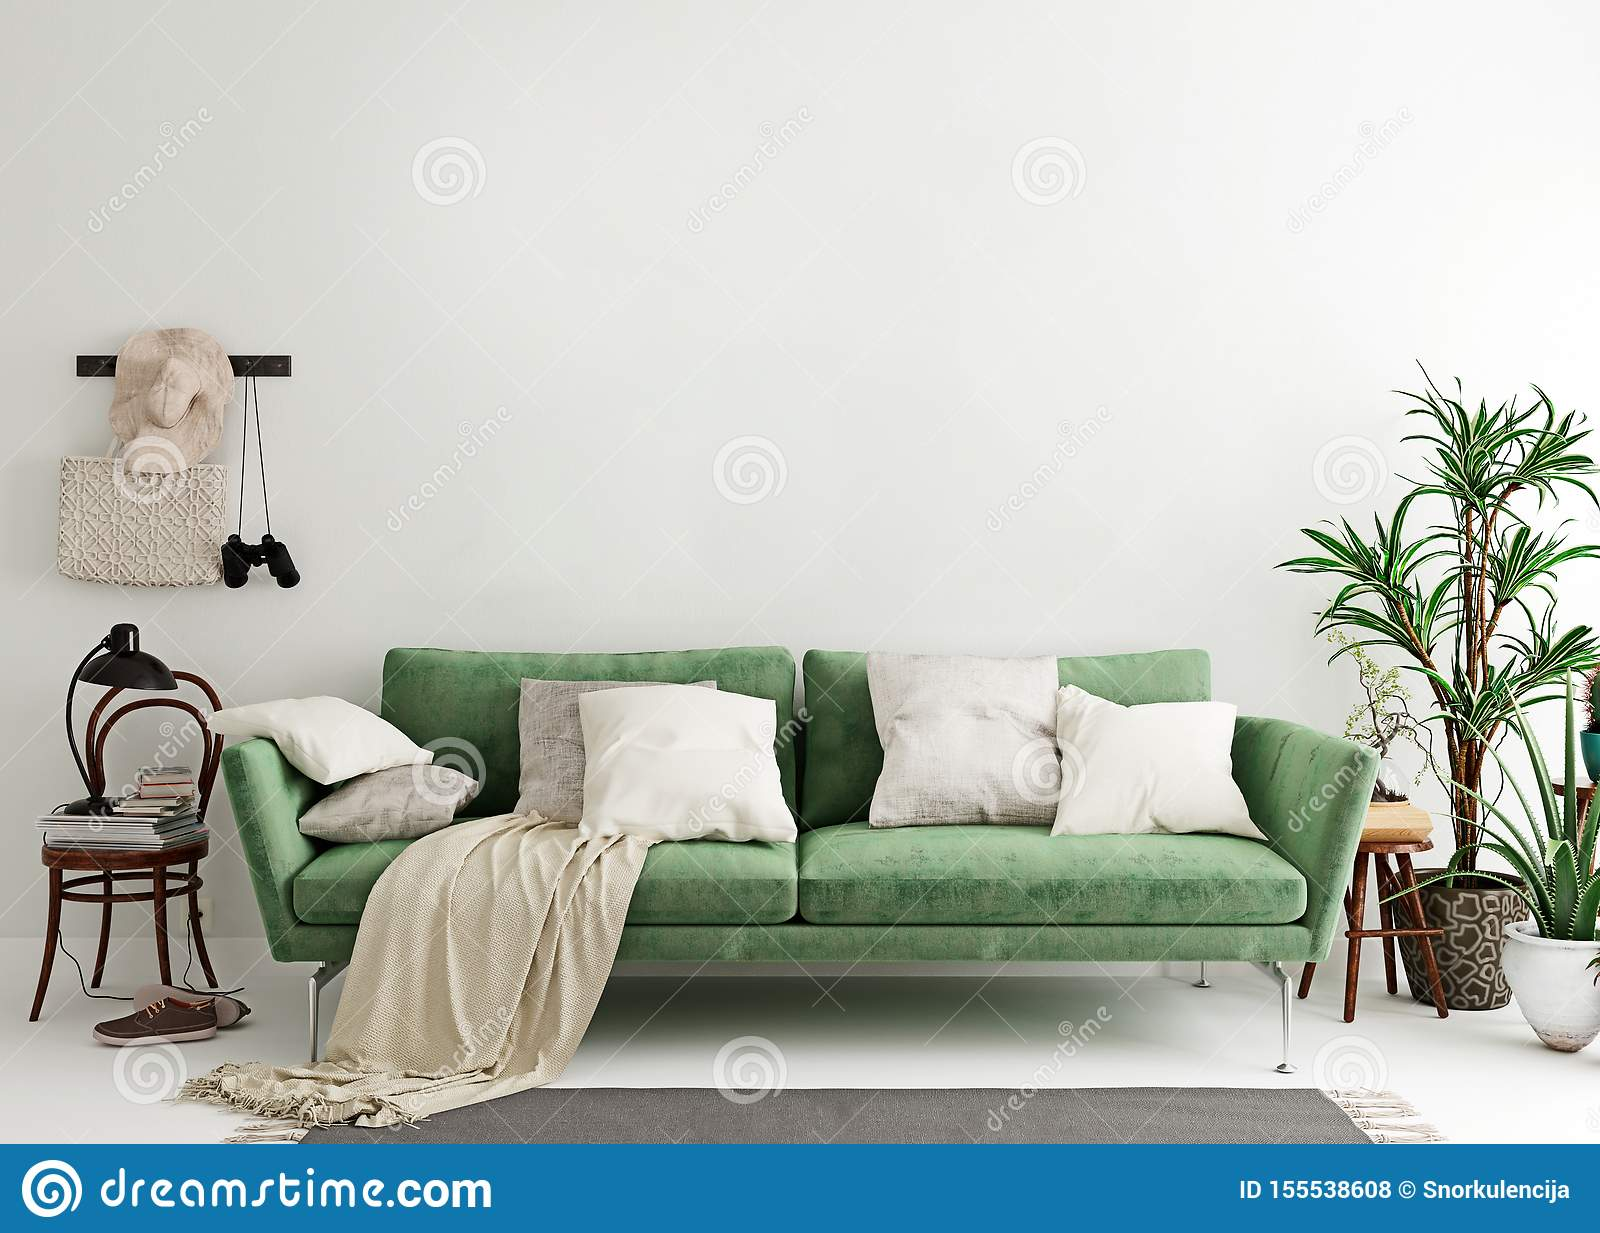 Mock Up Wall In Olive Green Modern Interior Background Living Room Scandinavian Style Stock Illustration Illustration Of Furniture Identity 155538608